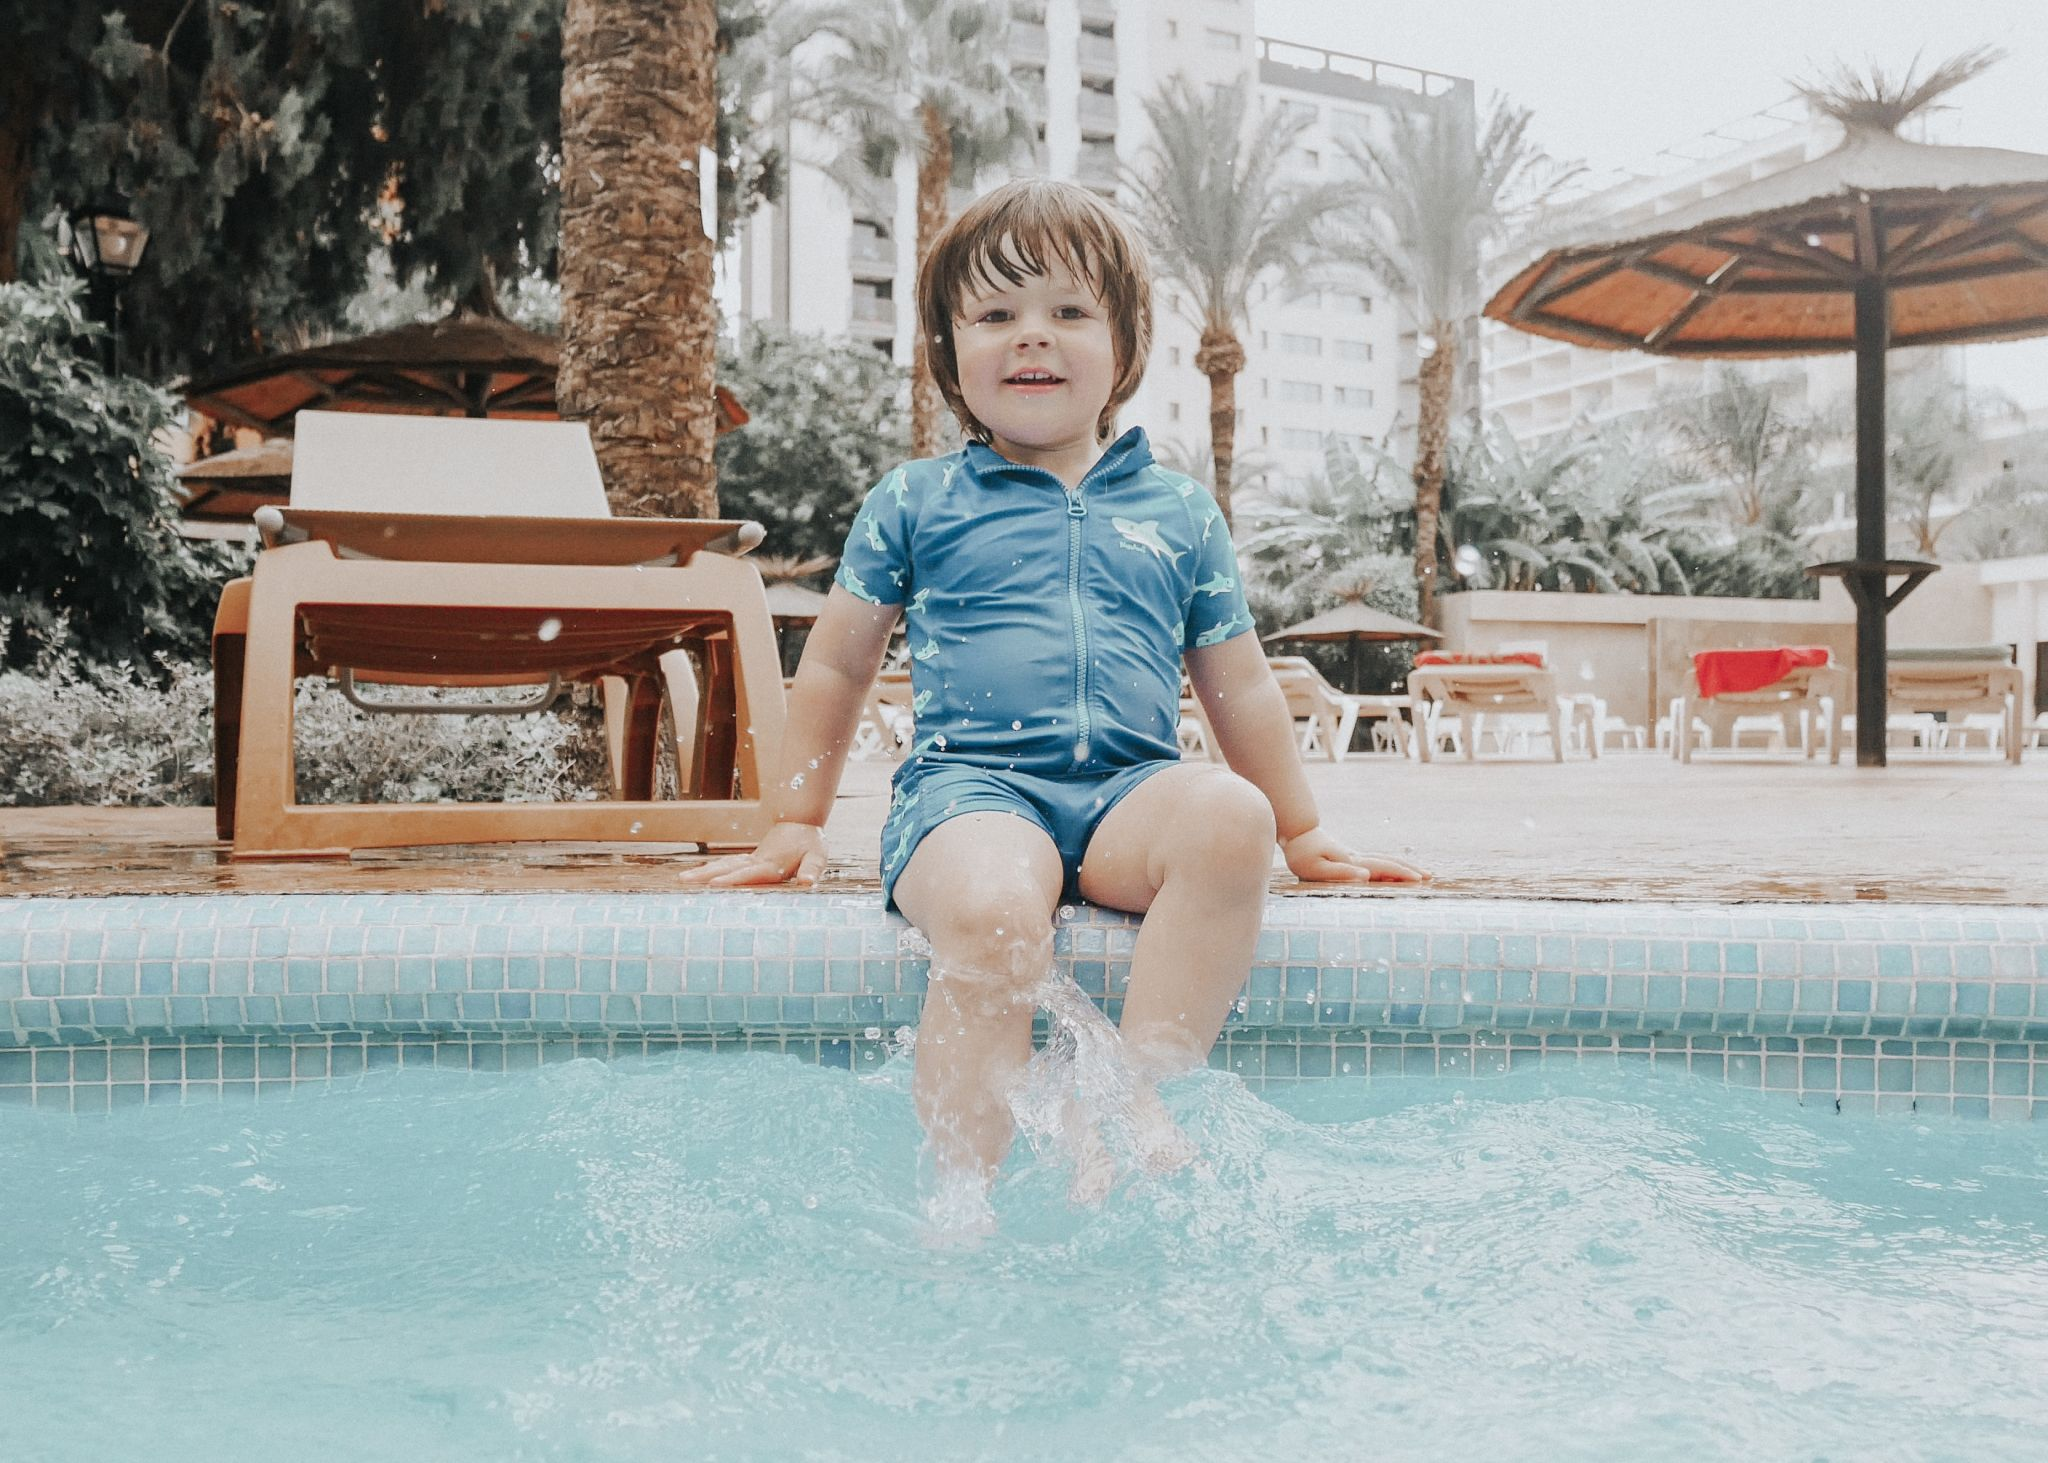 A toddler abroad